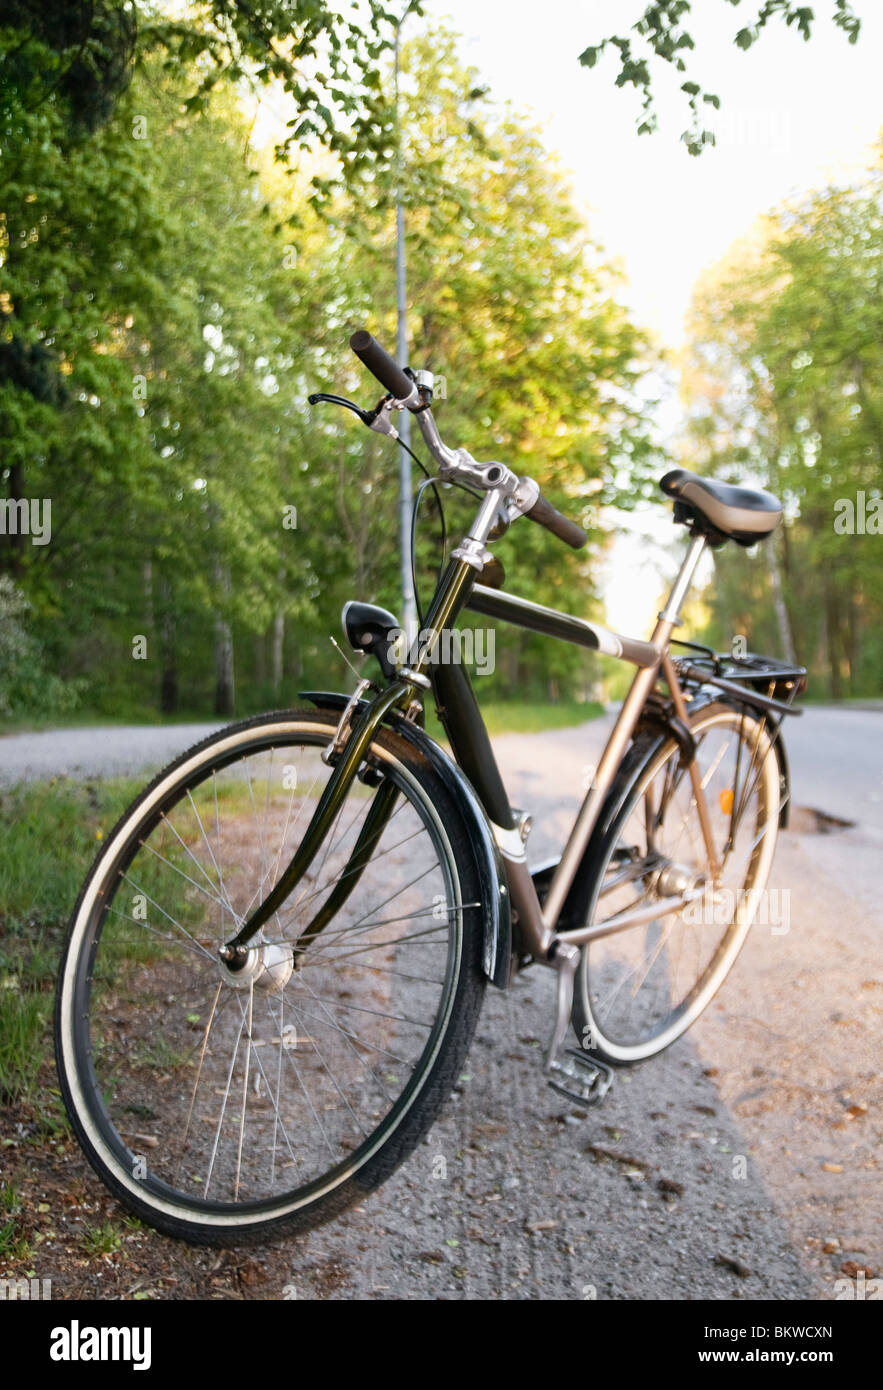 Cycle by gravel road - Stock Image